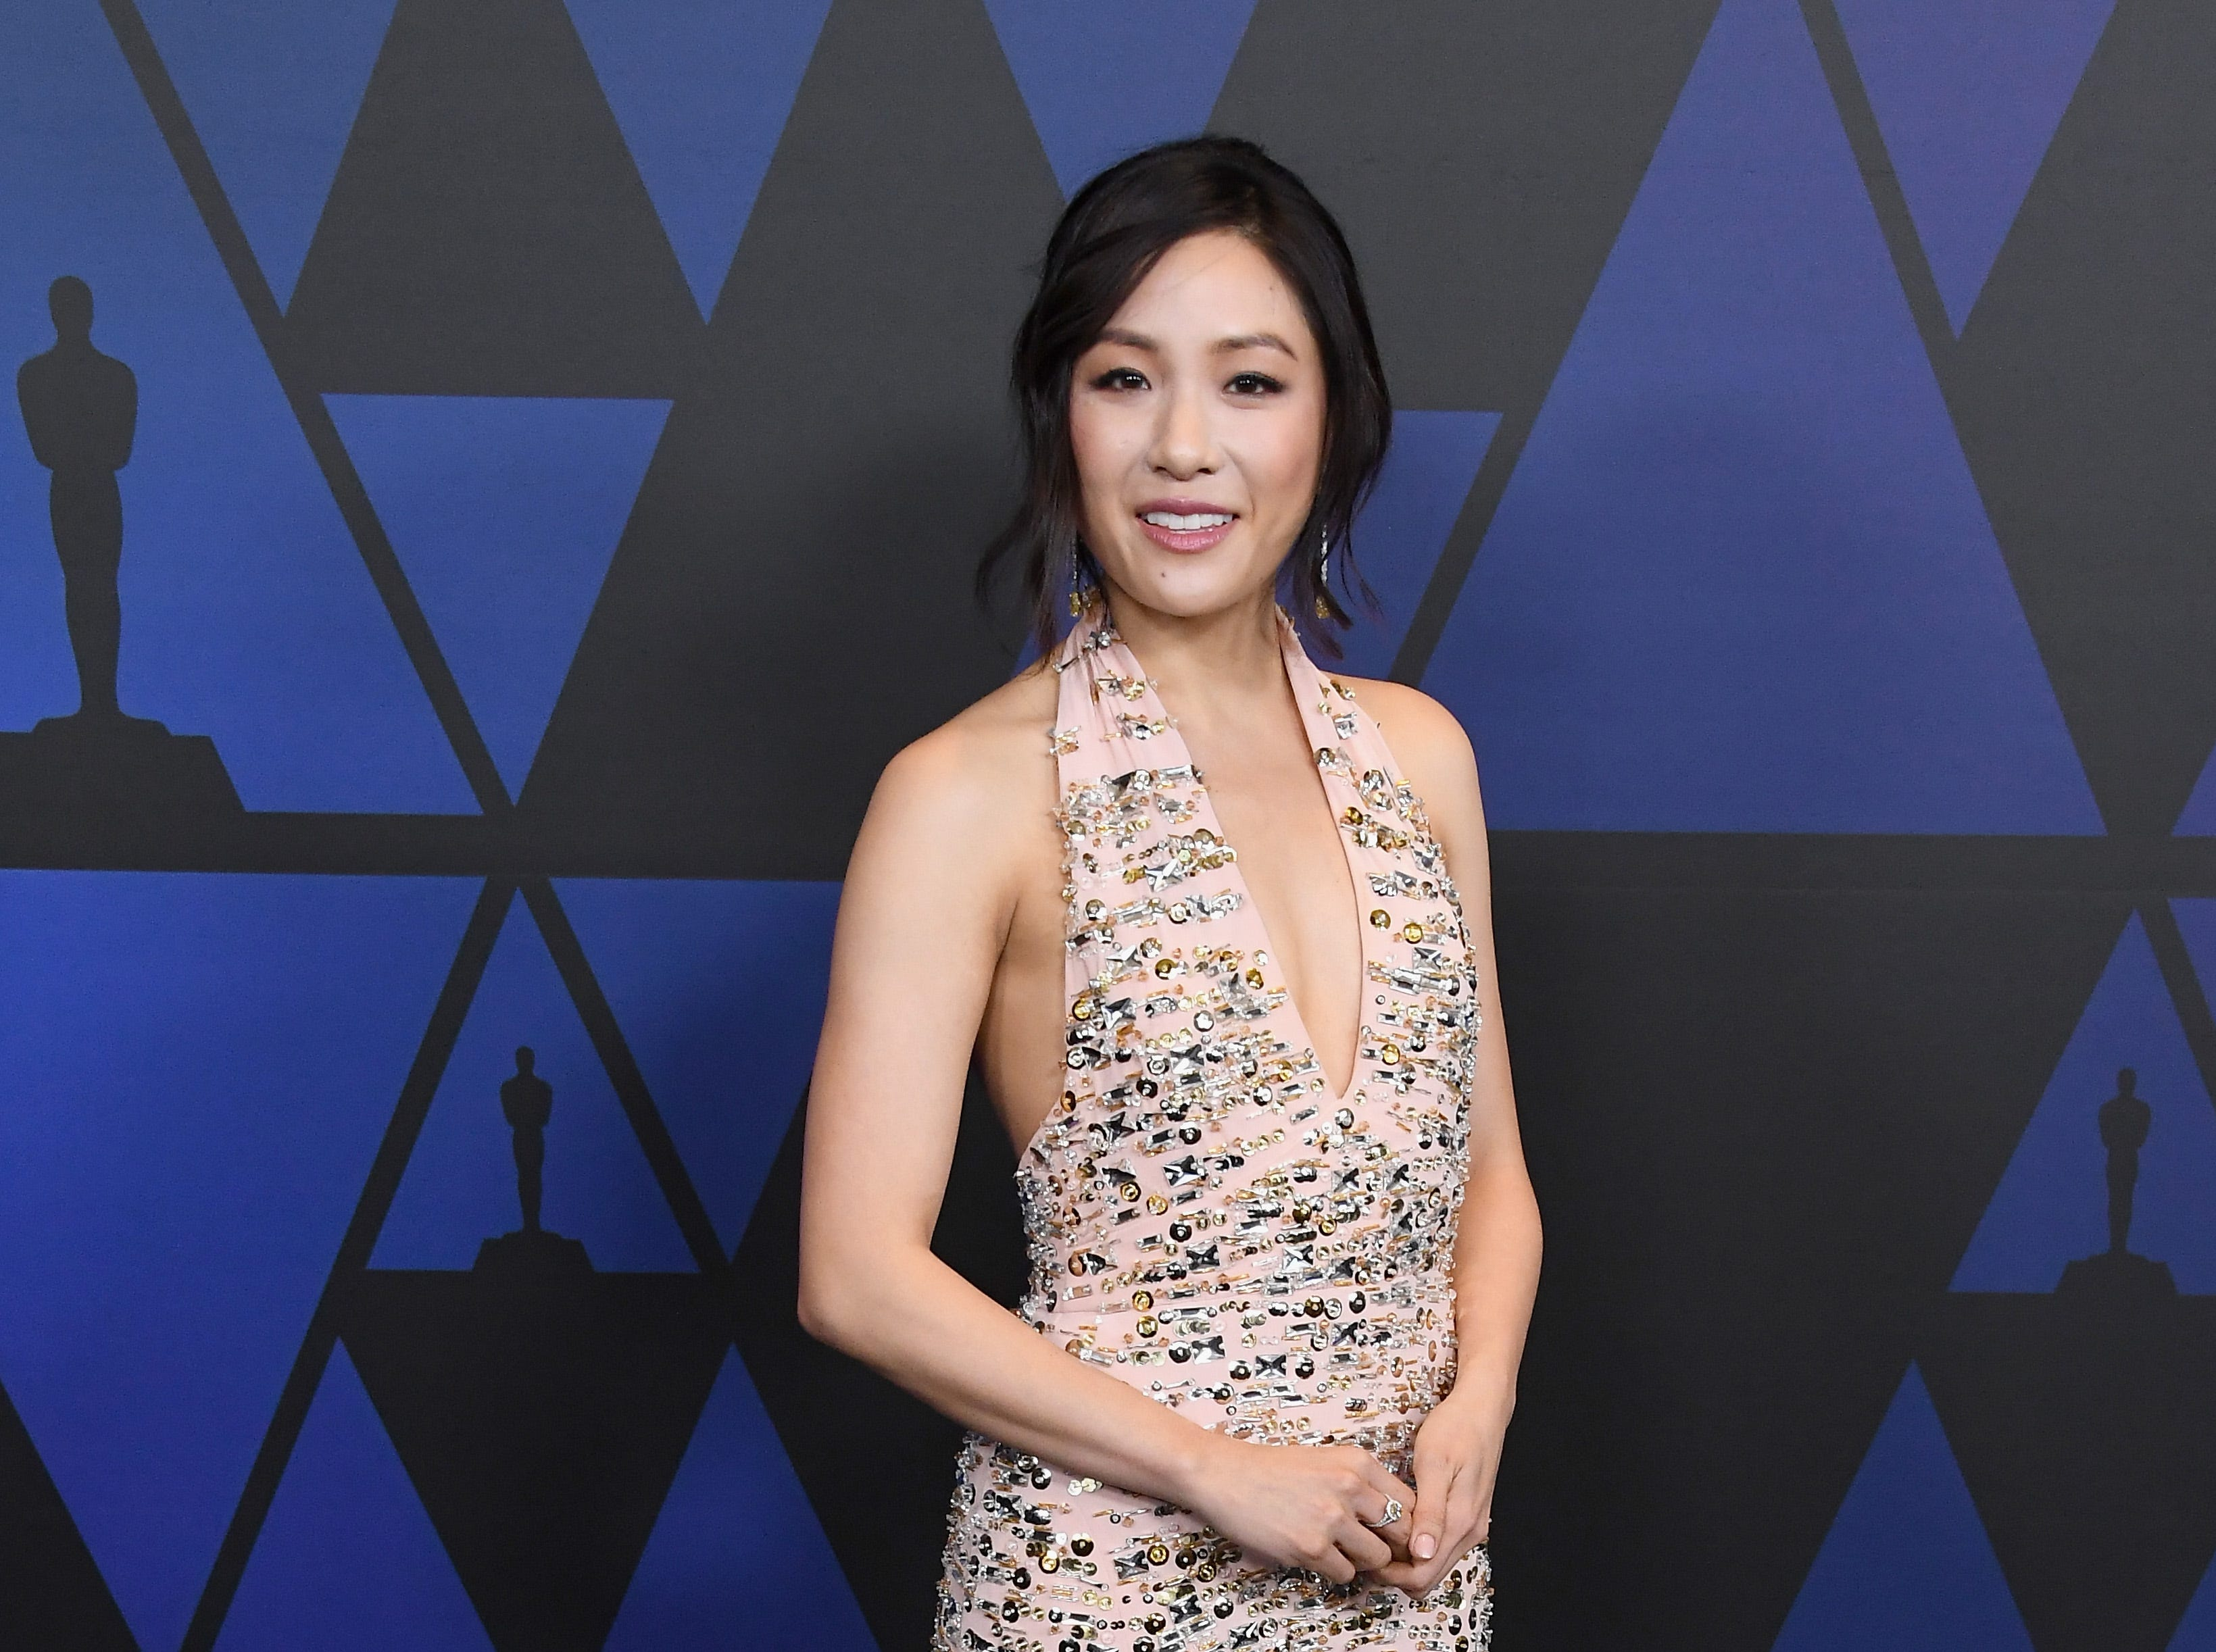 HOLLYWOOD, CA - NOVEMBER 18:  Constance Wu attends the Academy of Motion Picture Arts and Sciences' 10th annual Governors Awards at The Ray Dolby Ballroom at Hollywood & Highland Center on November 18, 2018 in Hollywood, California.  (Photo by Steve Granitz/WireImage) ORG XMIT: 775223509 ORIG FILE ID: 1063383656